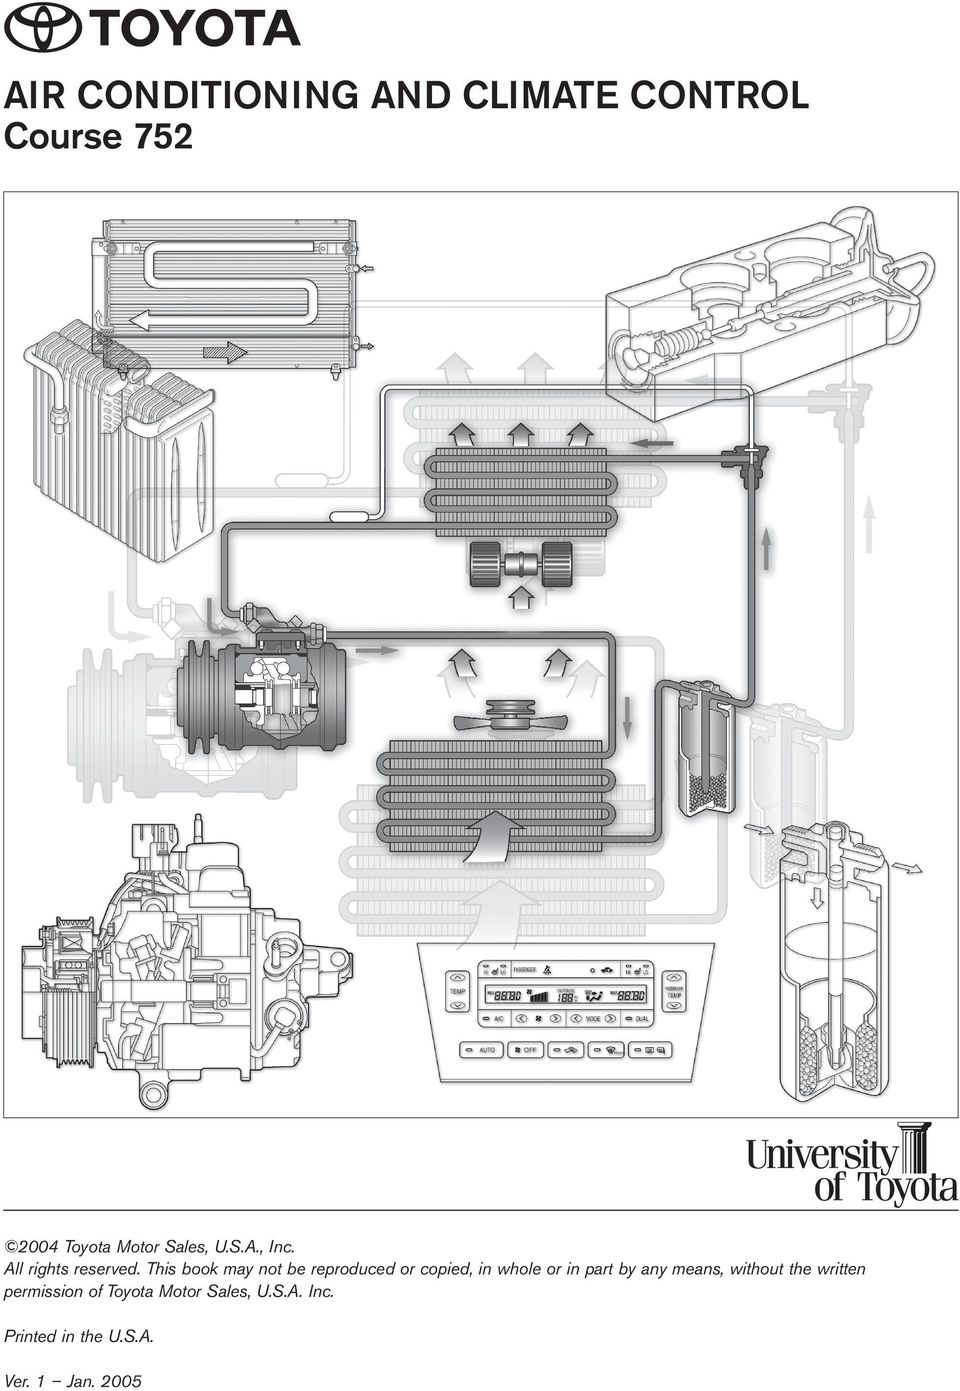 Air Conditioning And Climate Control Course Pdf Portable Electric Space Heaters Likewise Furnace Fan Limit Switch This Book May Not Be Reproduced Or Copied In Whole Part By Any